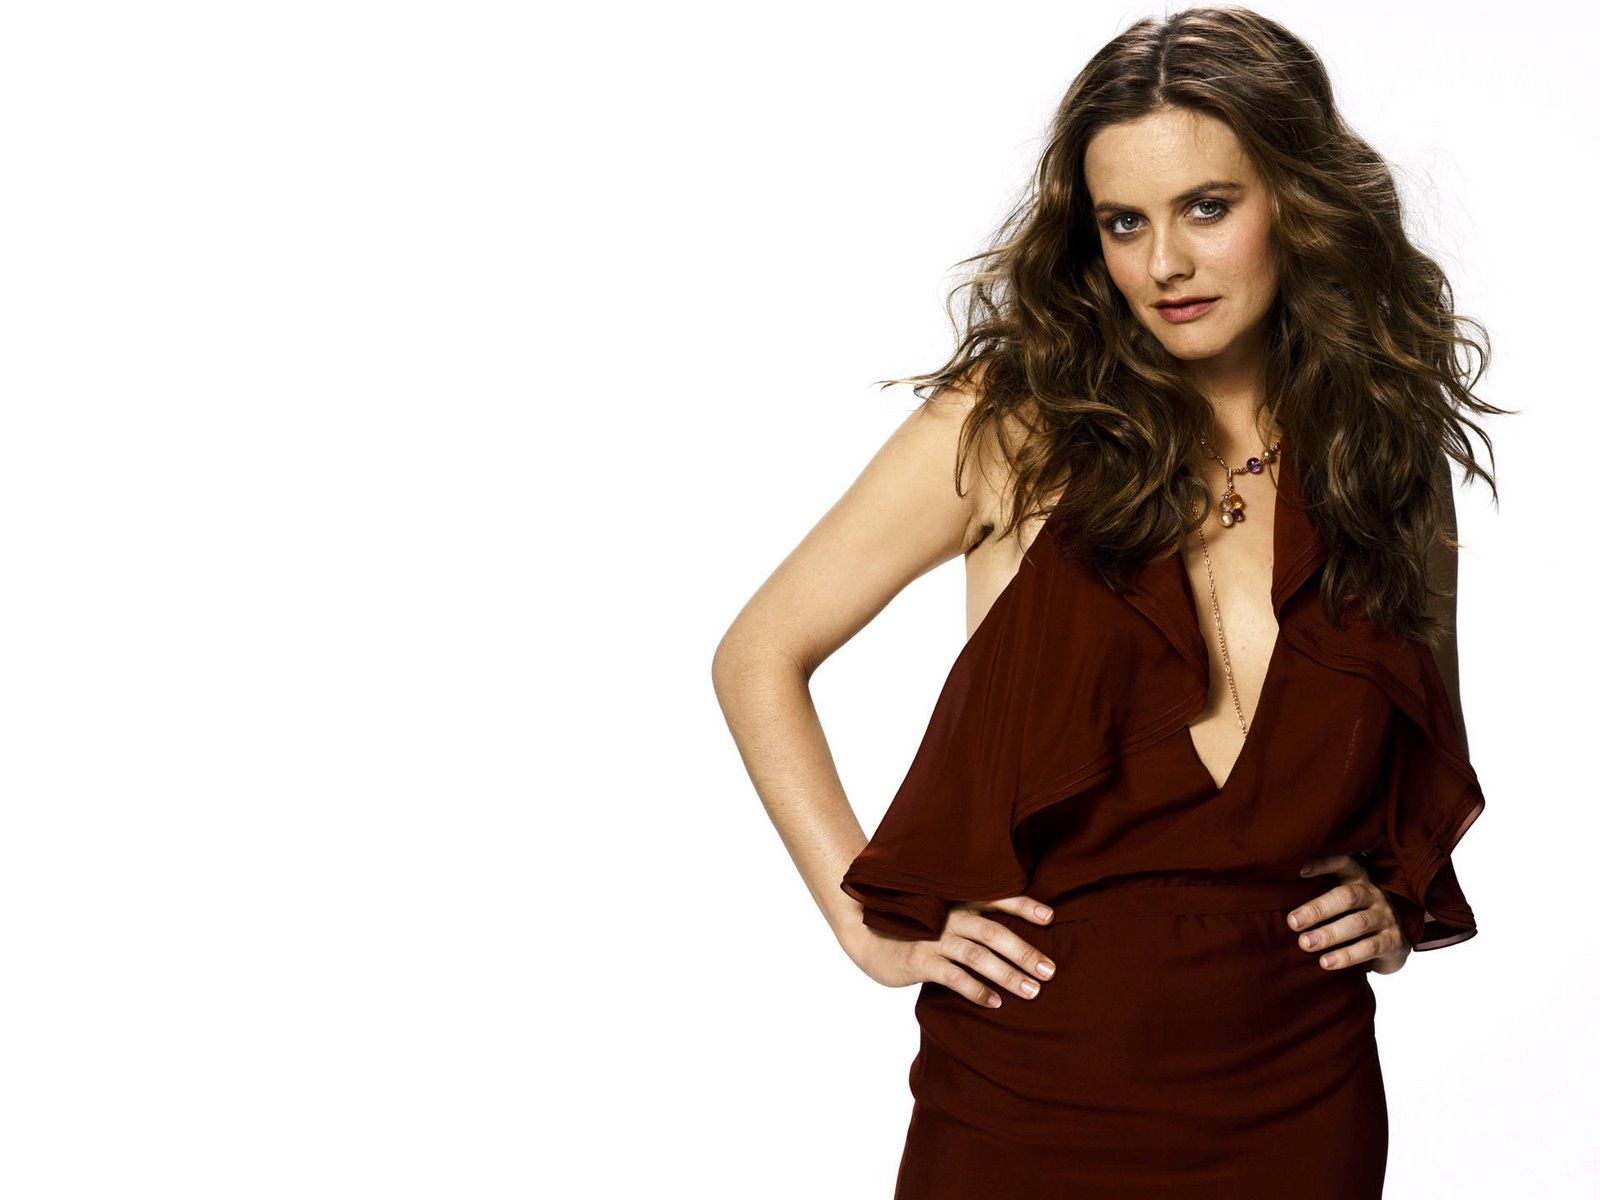 Free wallpapers without watermarks of alicia silverstone at fullwalls